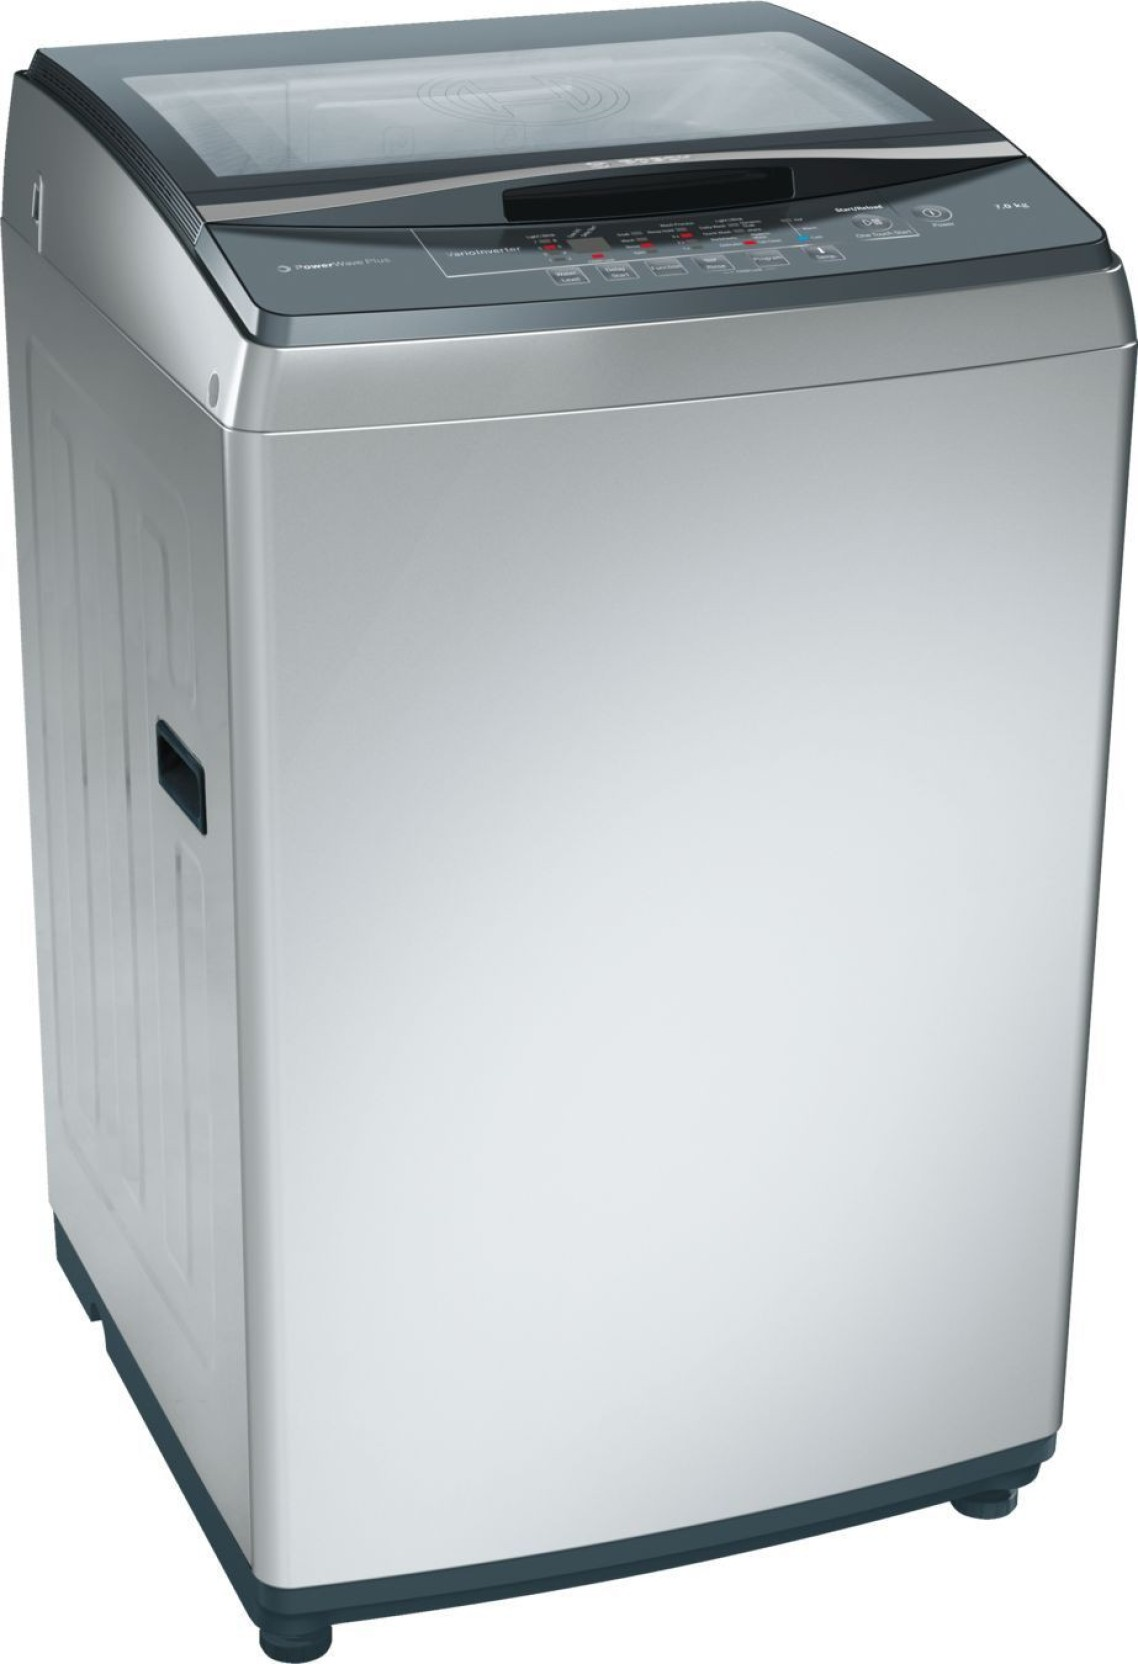 Bosch 7 Kg Fully Automatic Top Load Washing Machine Silver Price In Godrej Wiring Diagram Add To Cart